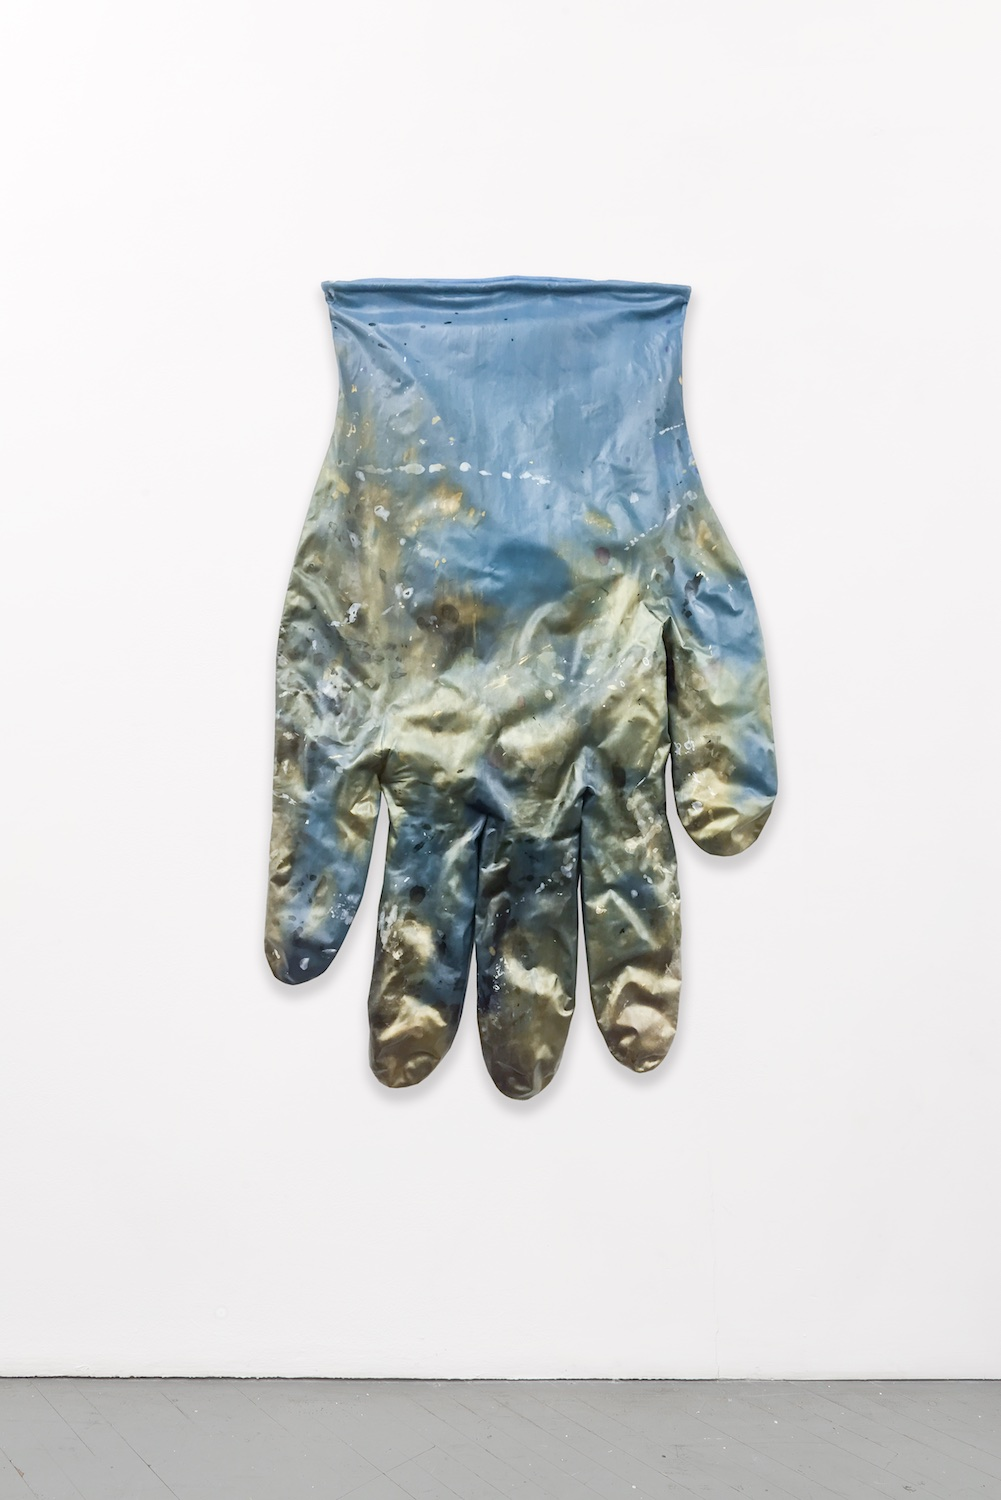 Amanda Ross-Ho  BLUE GLOVE LEFT #3  2015 Dyed stretch cotton sateen 70h x 42w in ARH099